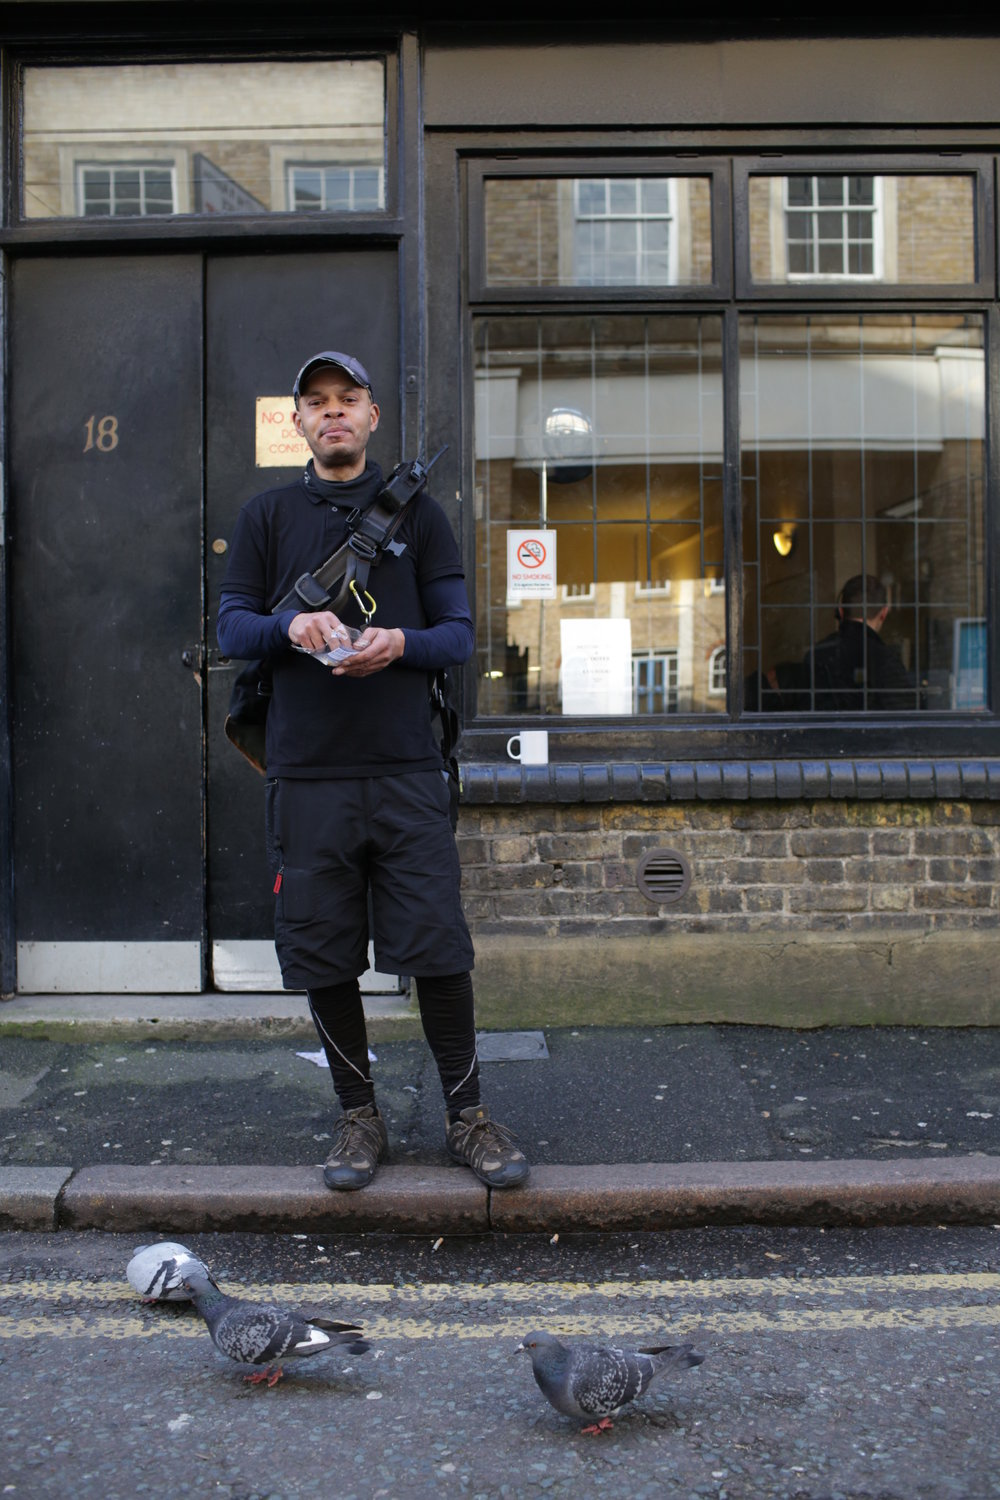 Tim was outside having a snack and tempting the pigeons with dropped crumbs. He's a bike courier and cycles all over Central London doing up to 30 jobs a day. He said car drivers can be dangerous but in his experience other cyclists and pedestrians are the ones to watch out for!